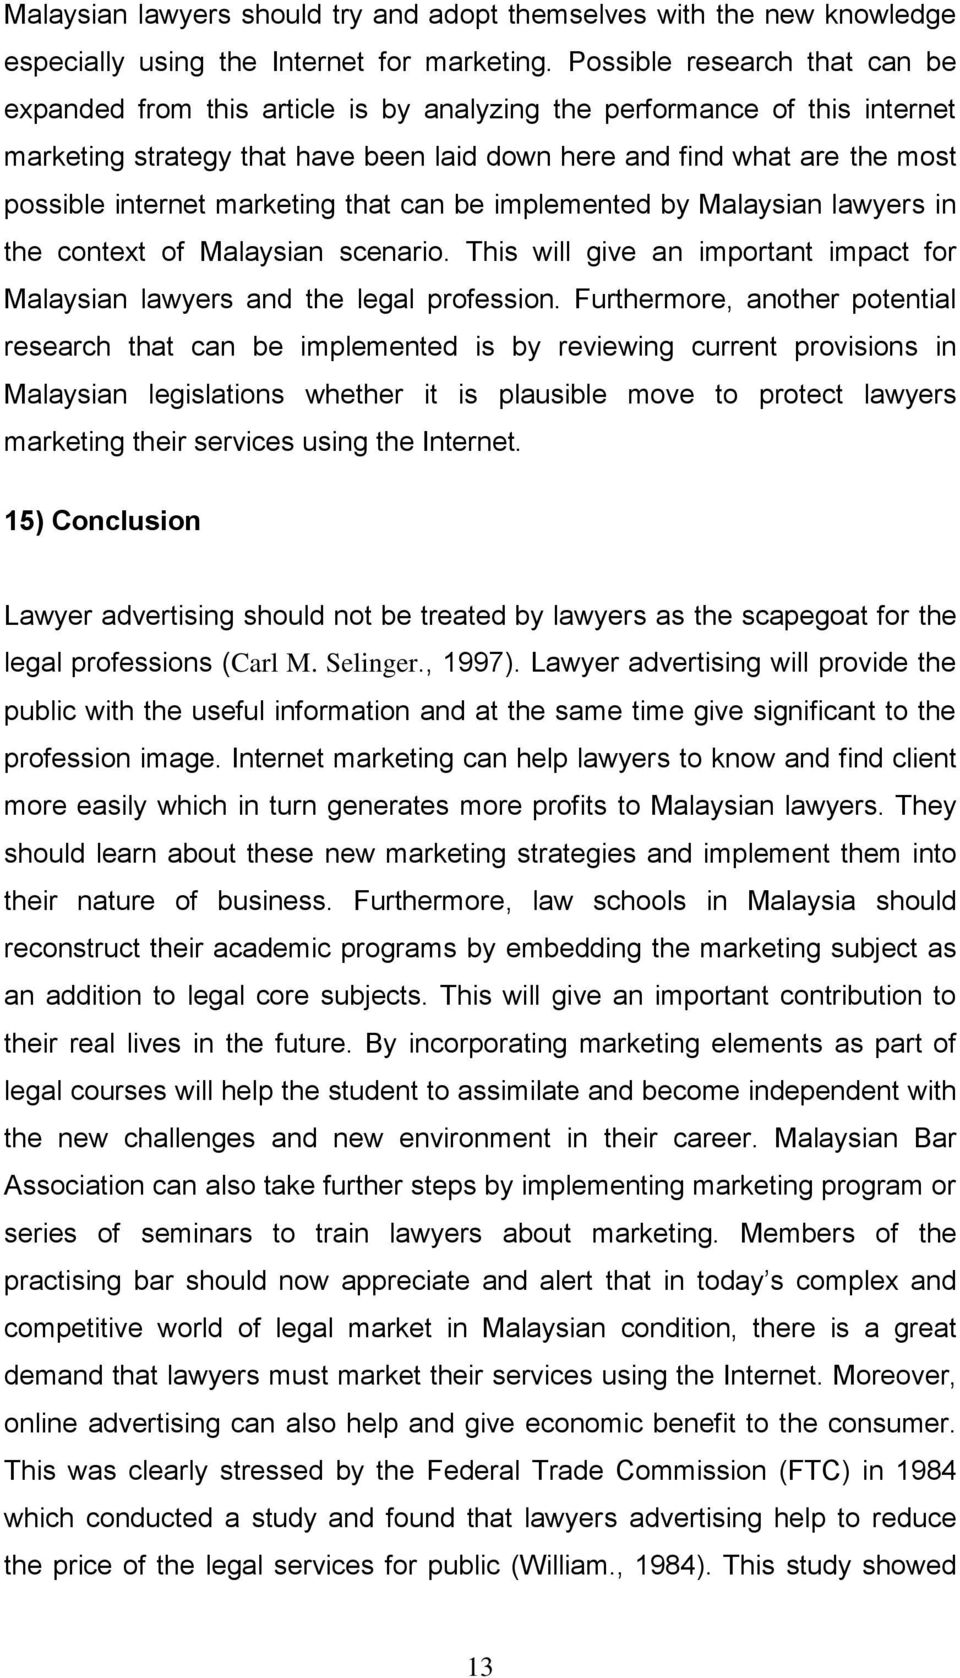 marketing that can be implemented by Malaysian lawyers in the context of Malaysian scenario. This will give an important impact for Malaysian lawyers and the legal profession.